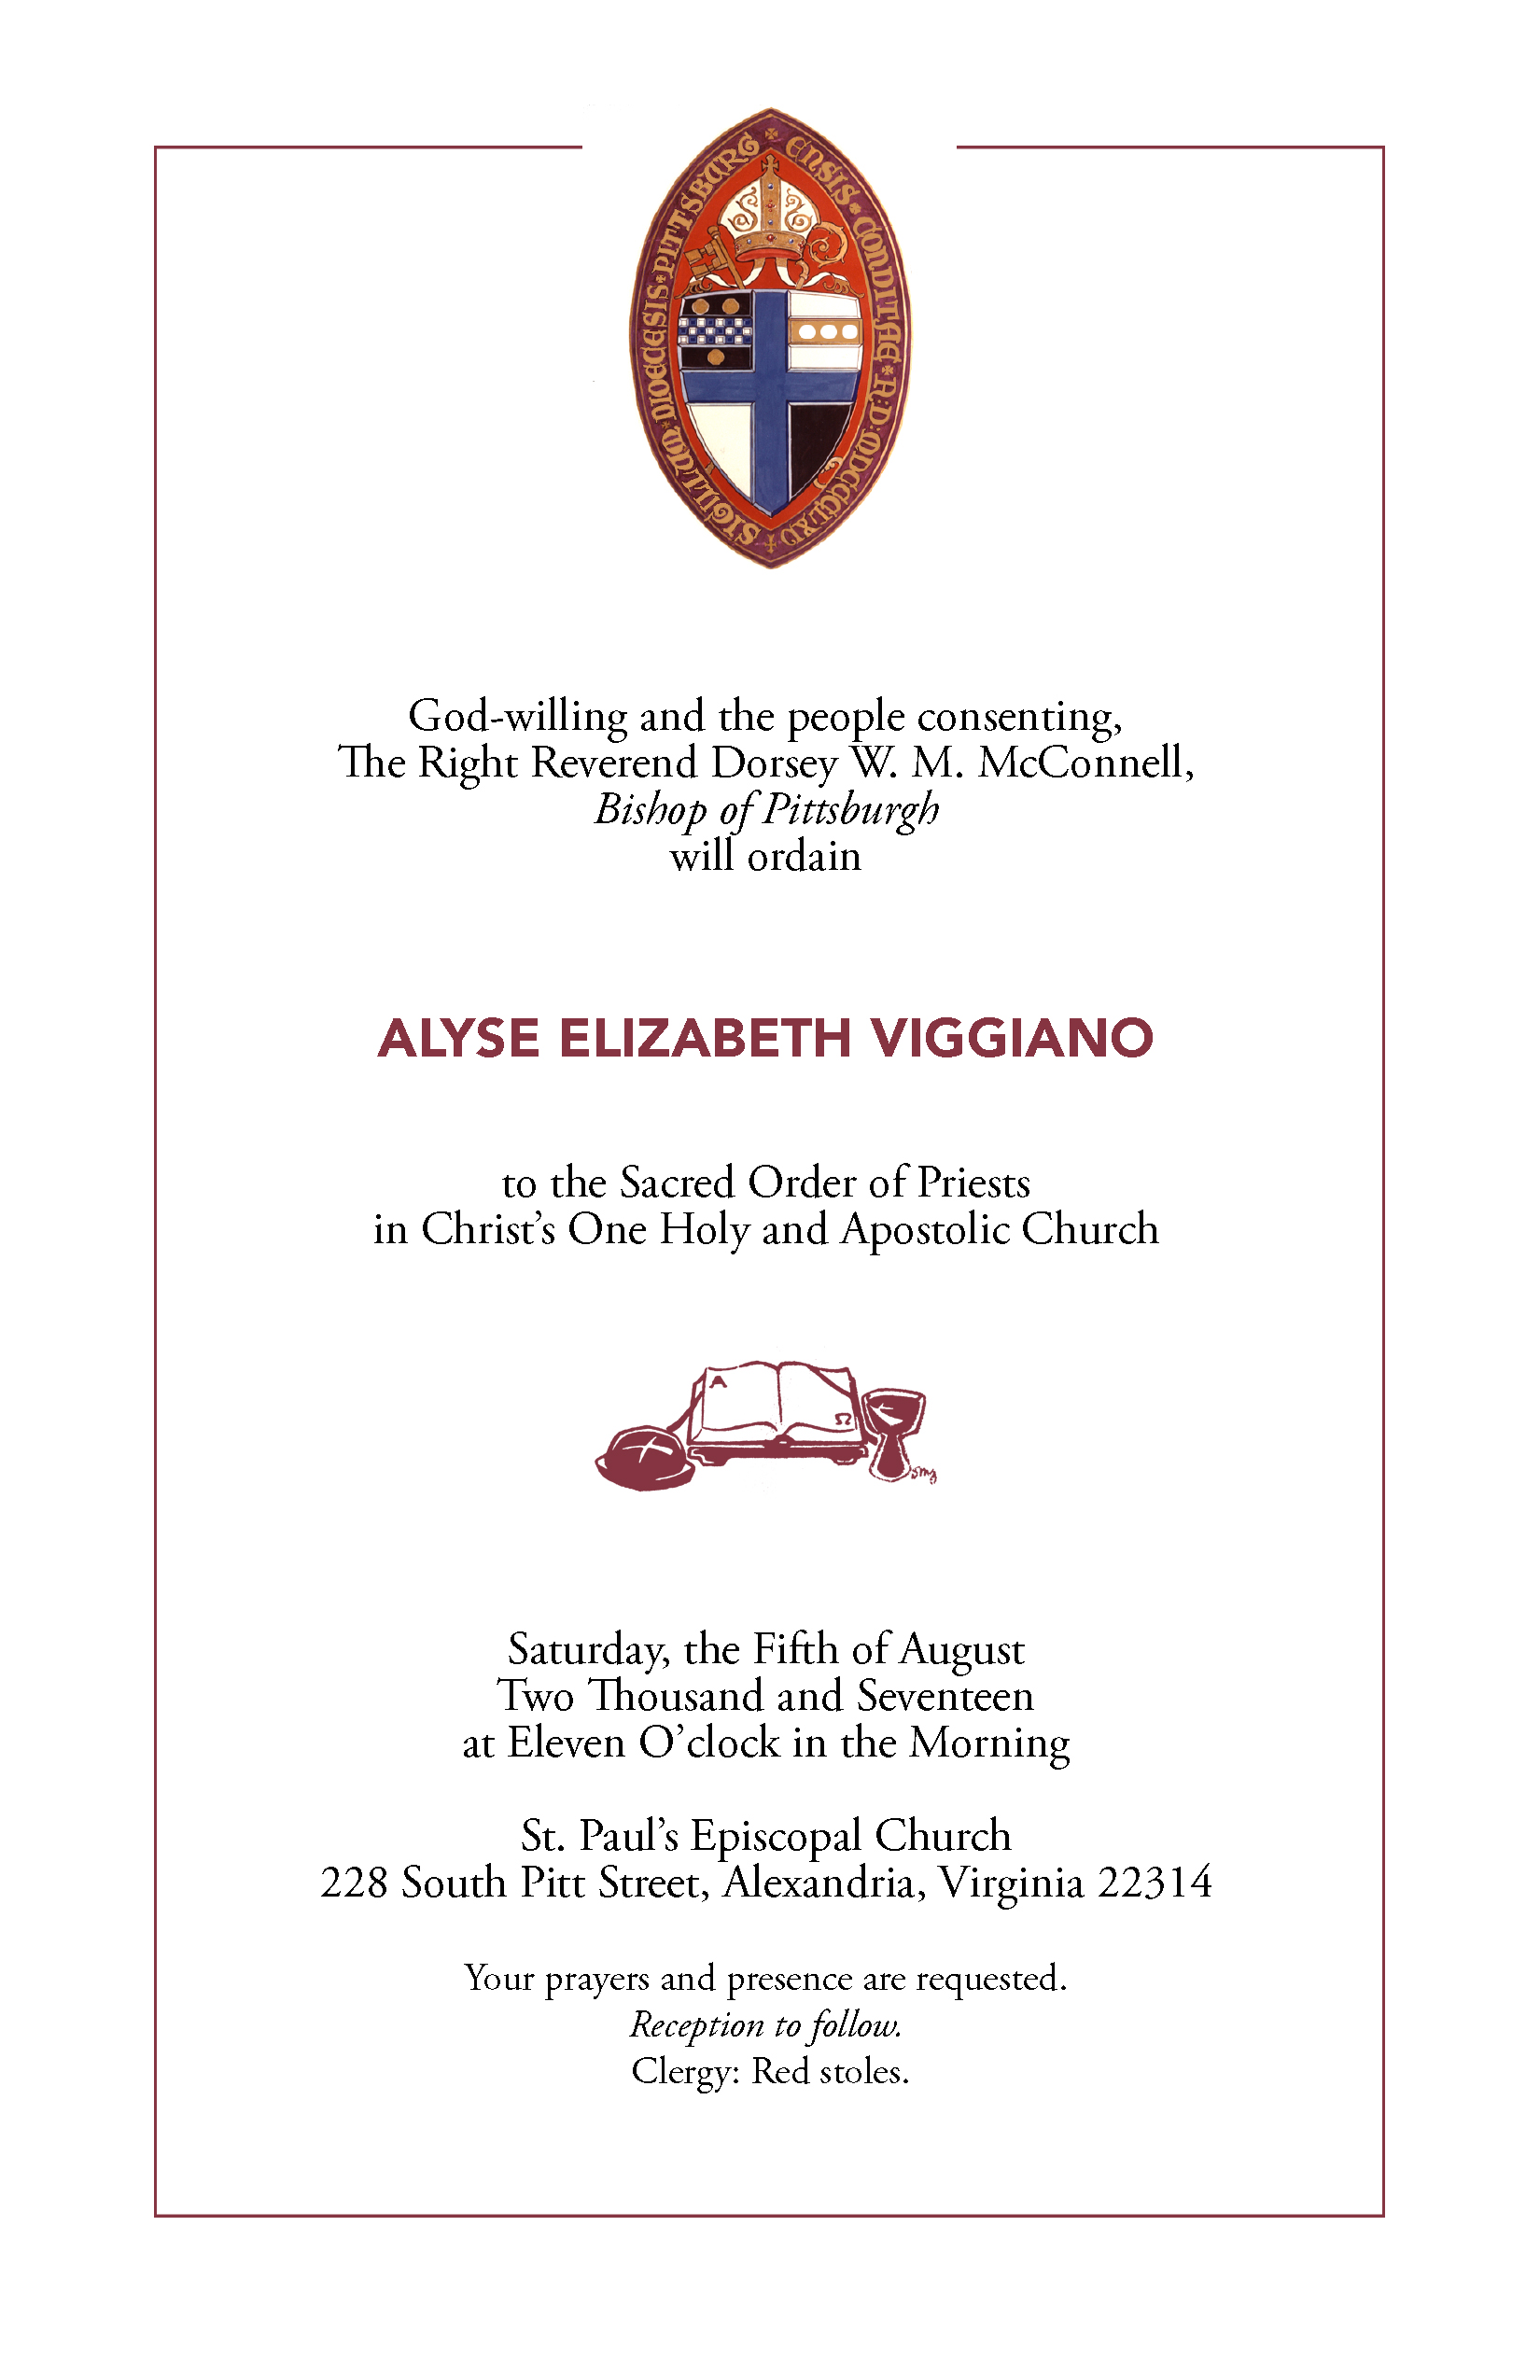 """... ordination gift, if you would like to contribute toward that please write a check to St. Paul's with """"Alyse Viggiano Ordination Gift"""" on the memo line."""